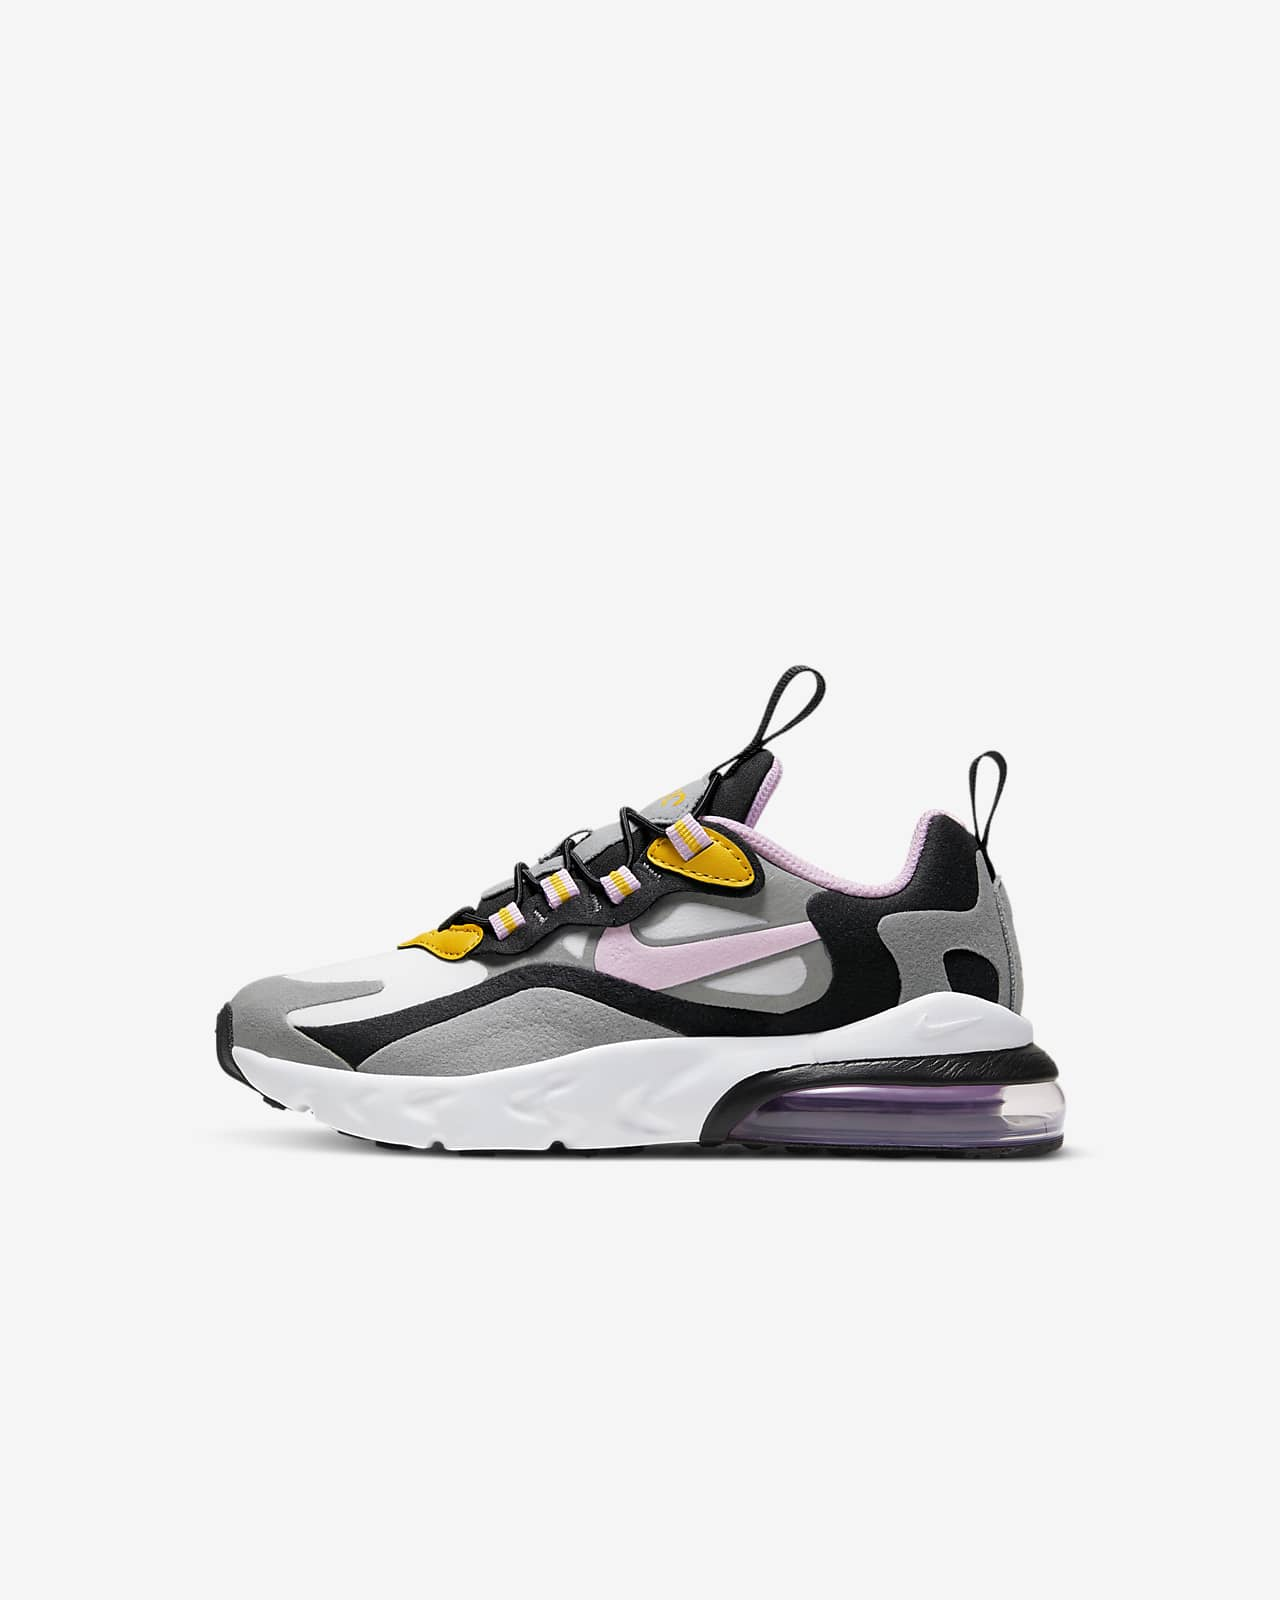 chaussures nike enfant fille air max 270